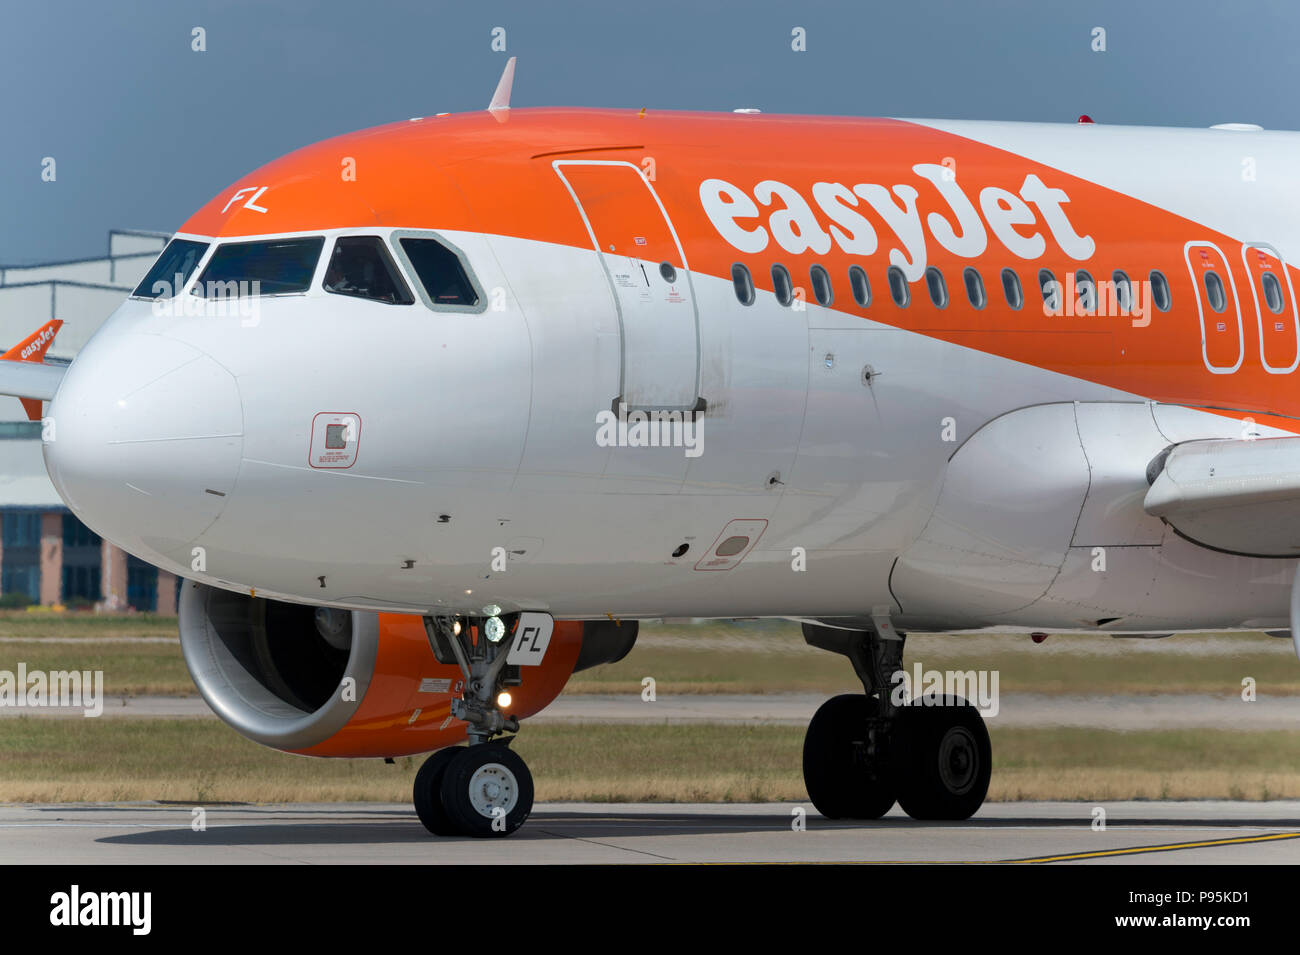 An Easyjet Airbus A319 taxis along the runway at Manchester Airport whilst preparing to take off. - Stock Image